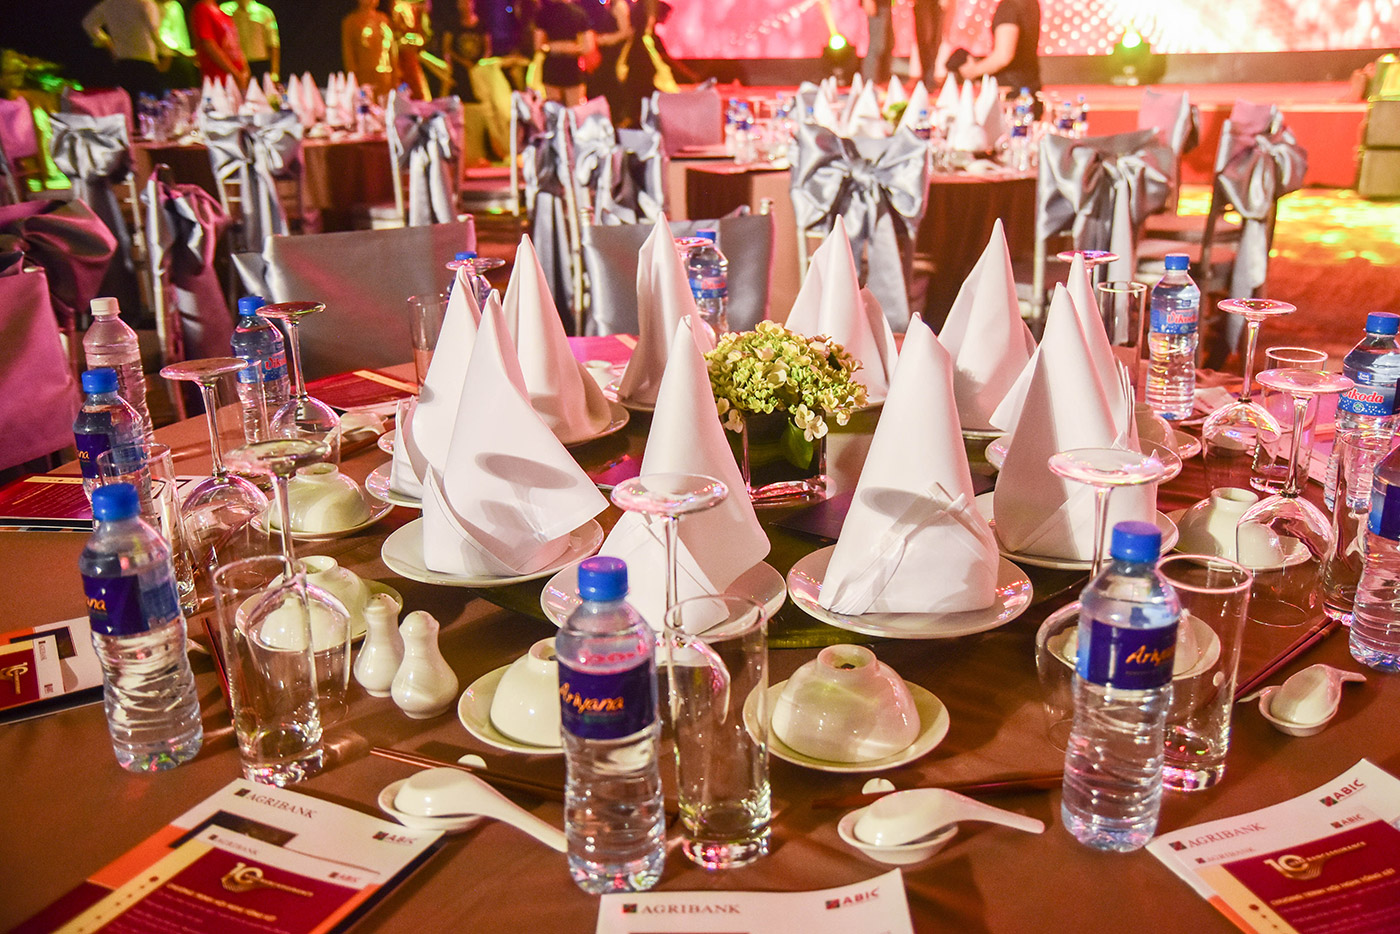 ABIC'S CONFERENCE AND GALA DINNER